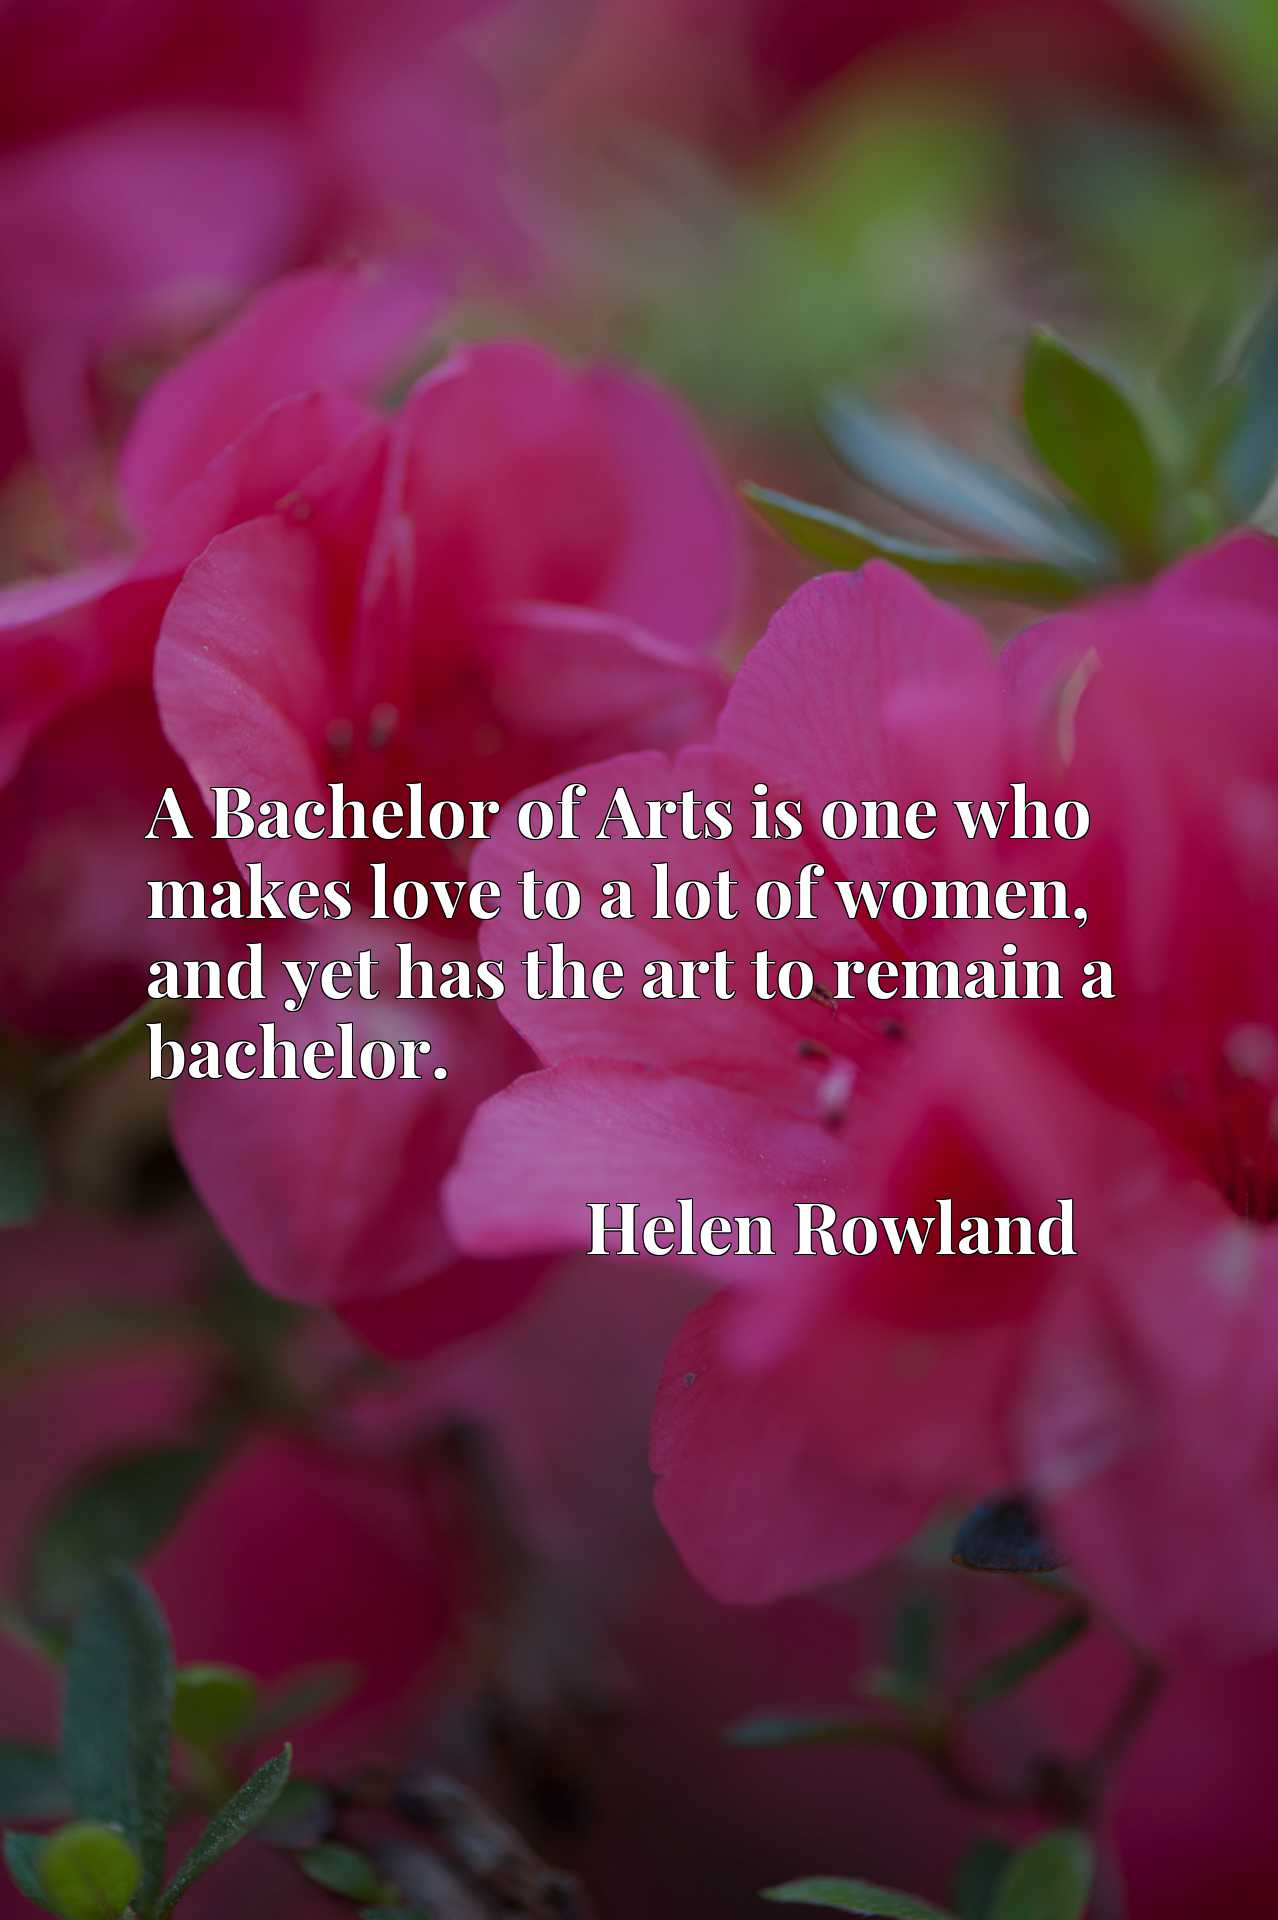 A Bachelor of Arts is one who makes love to a lot of women, and yet has the art to remain a bachelor.